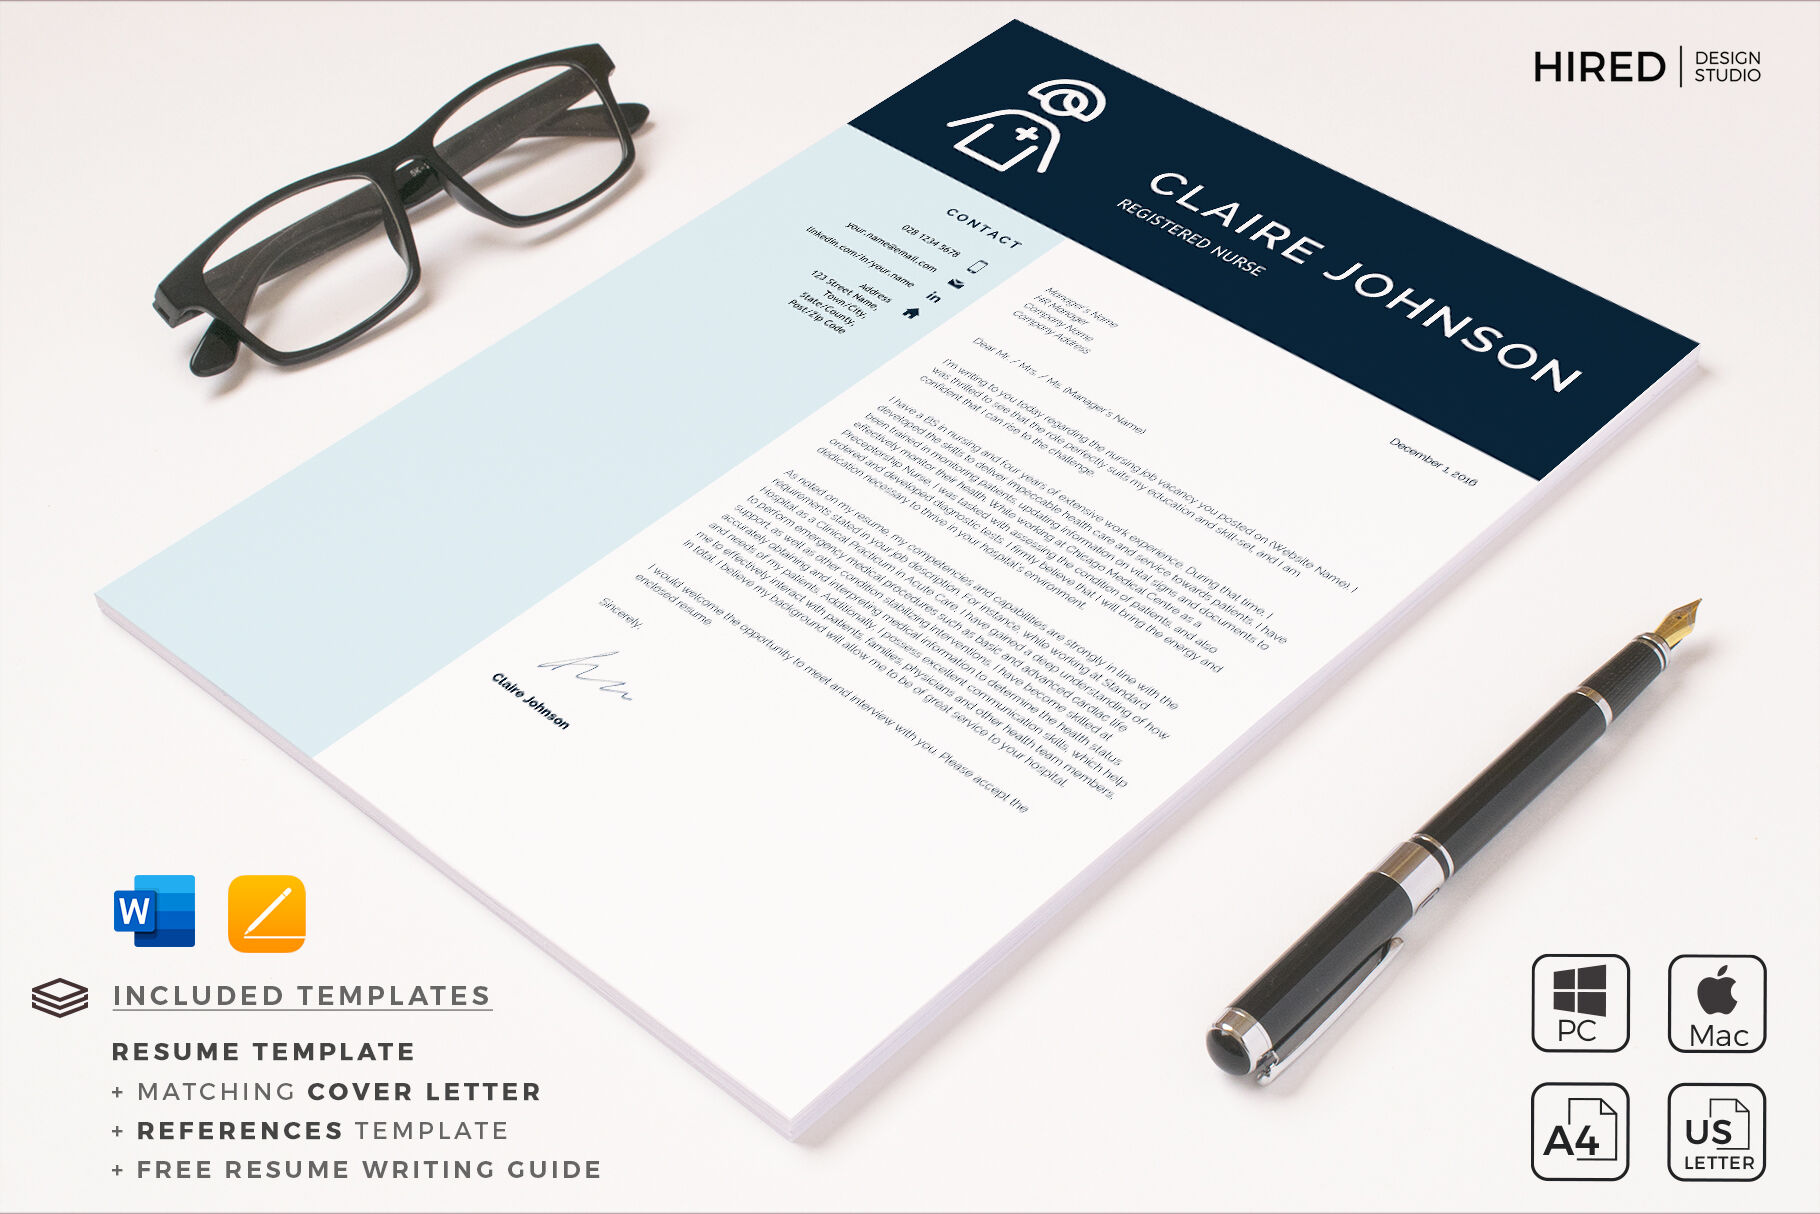 Q Amp A Resume Format on for job experience, best college, sample fresher, templates free, cv vs, civil engineering, printable blank,